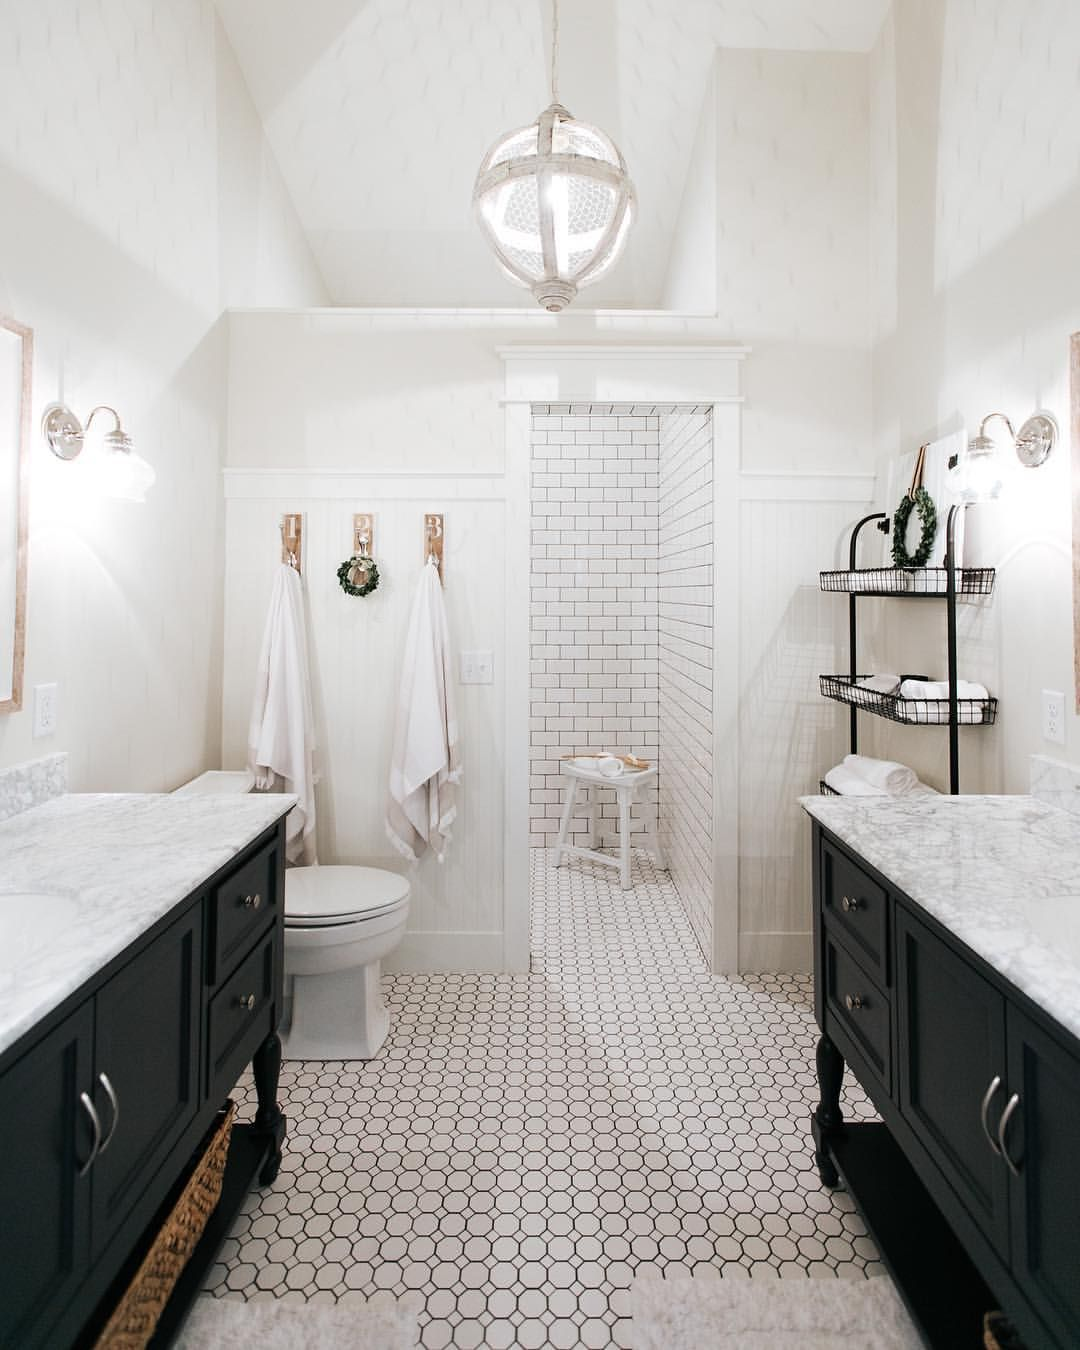 Pin By Stephanie Gleeson On Toiletd: Pin By Stephanie Guice On Bathrooms In 2019